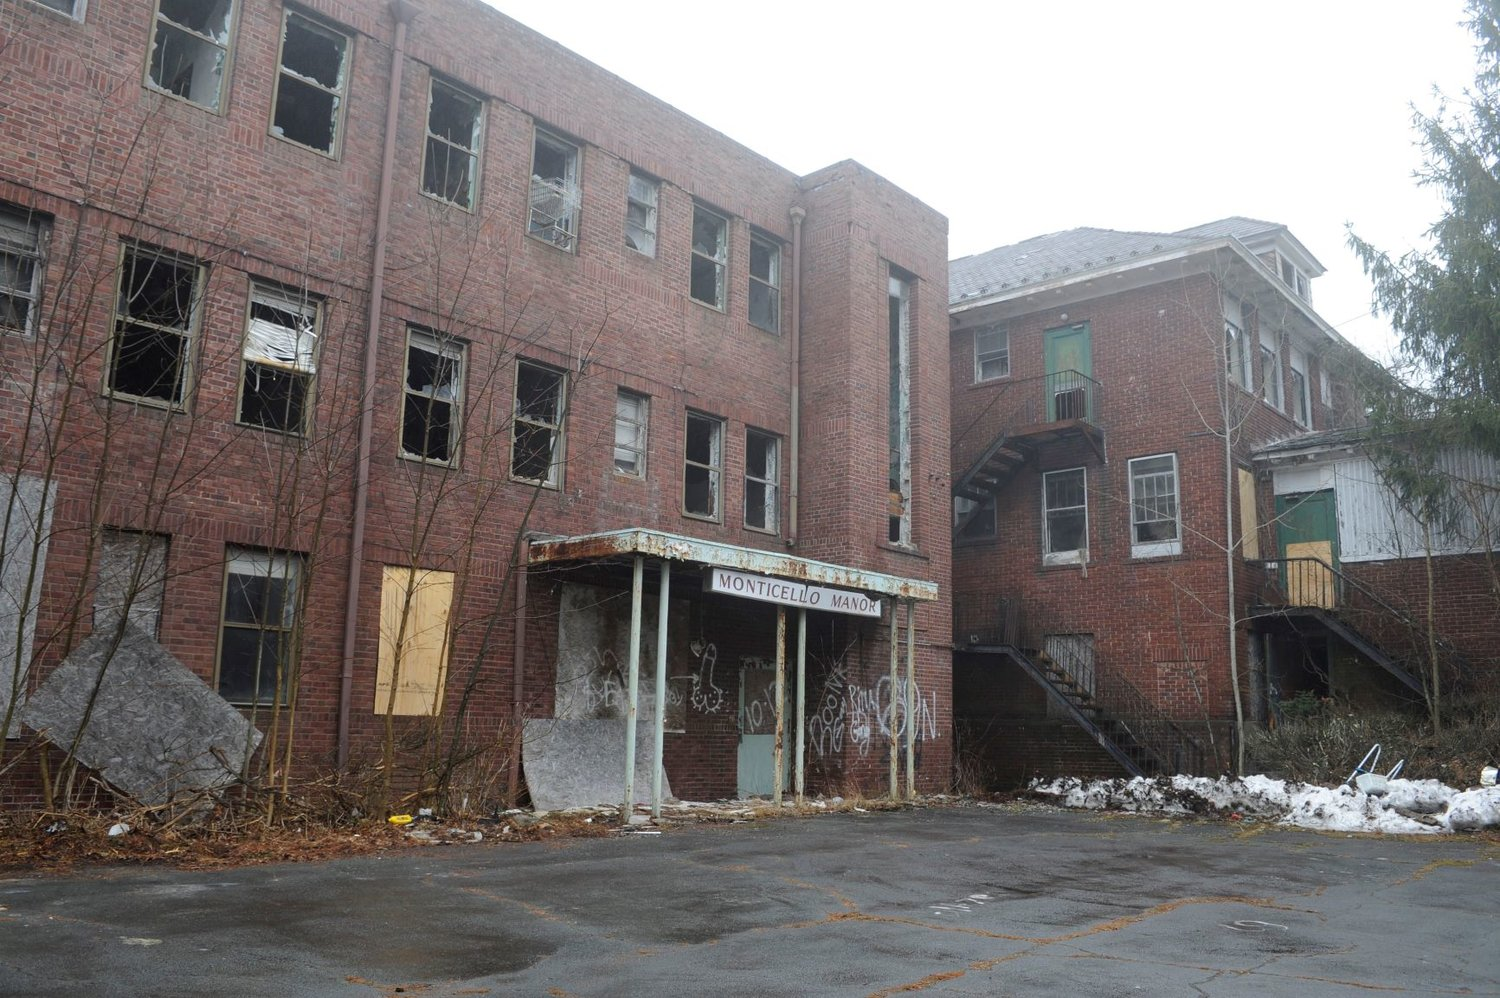 $500,000 grant will be used to clean up the brownfield site at Monticello Manor.